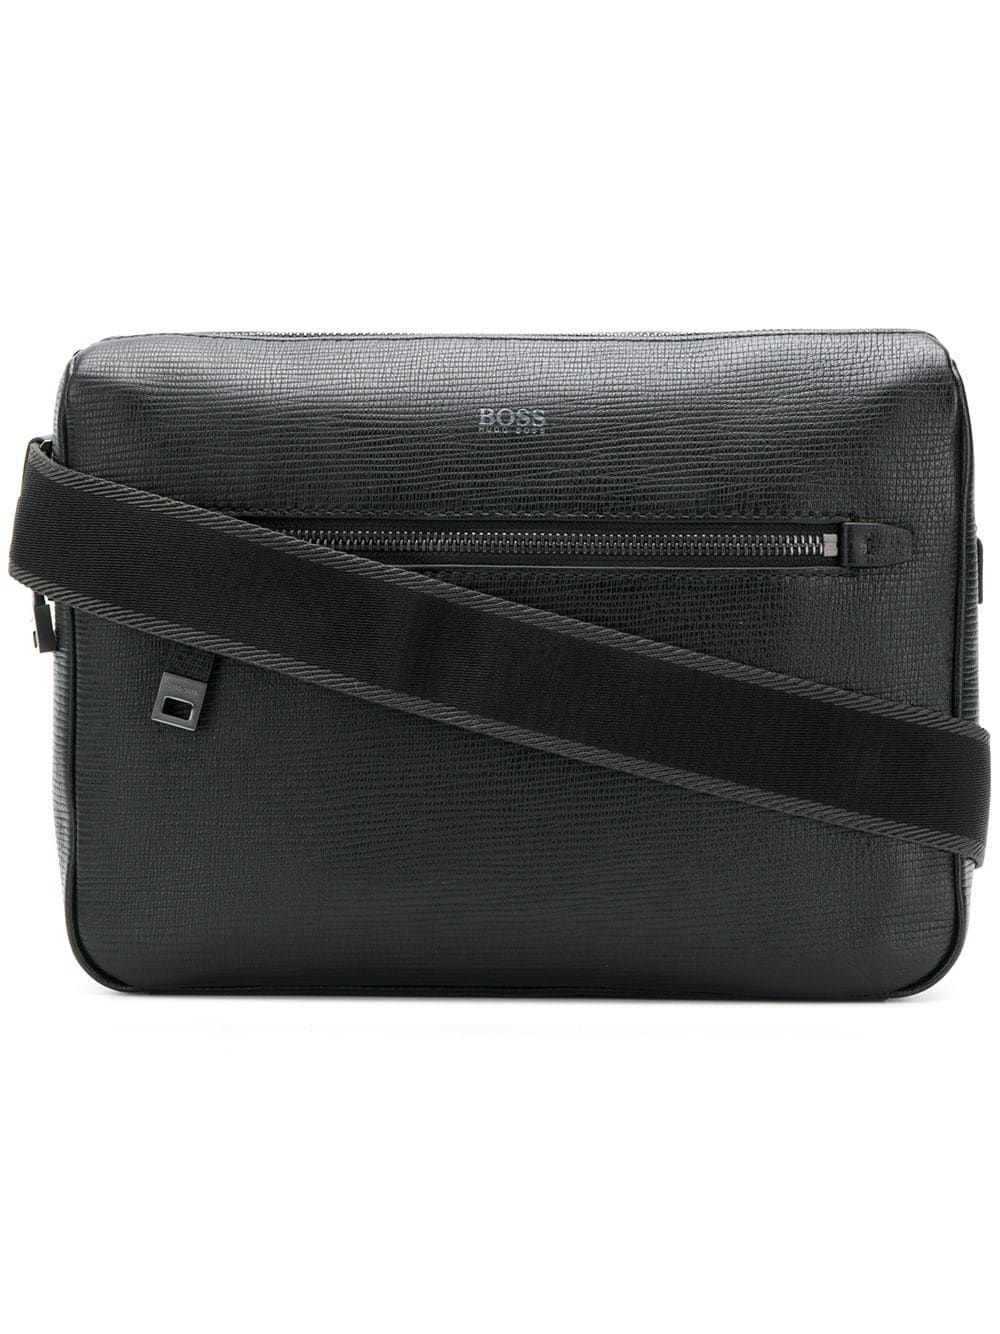 26a5413723fd BOSS HUGO BOSS BOSS HUGO BOSS BOSS HUGO BOSS 50402688 BLACK CALF LEATHER.  #bosshugoboss #bags #leather